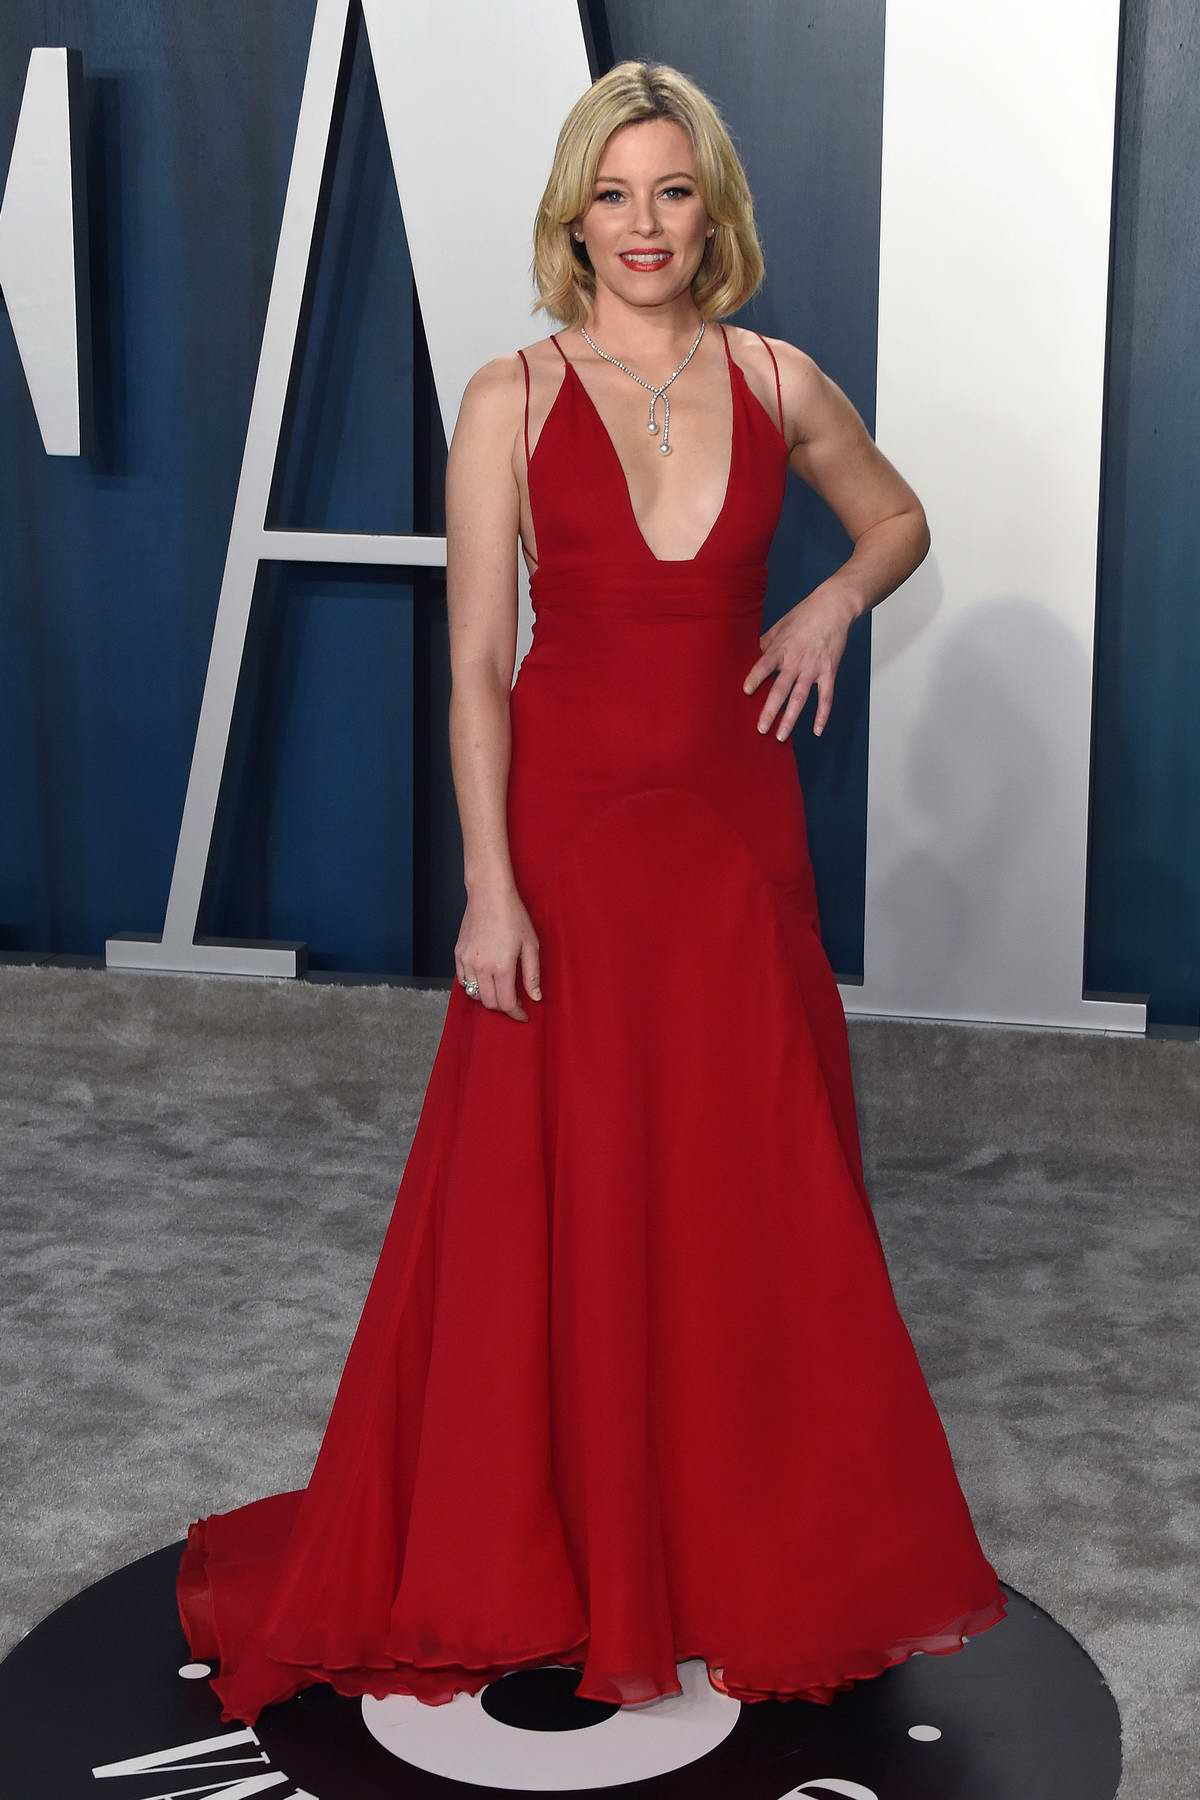 attends the 2020 Vanity Fair Oscar Party at Wallis Annenberg Center for the Performing Arts in Los Angeles